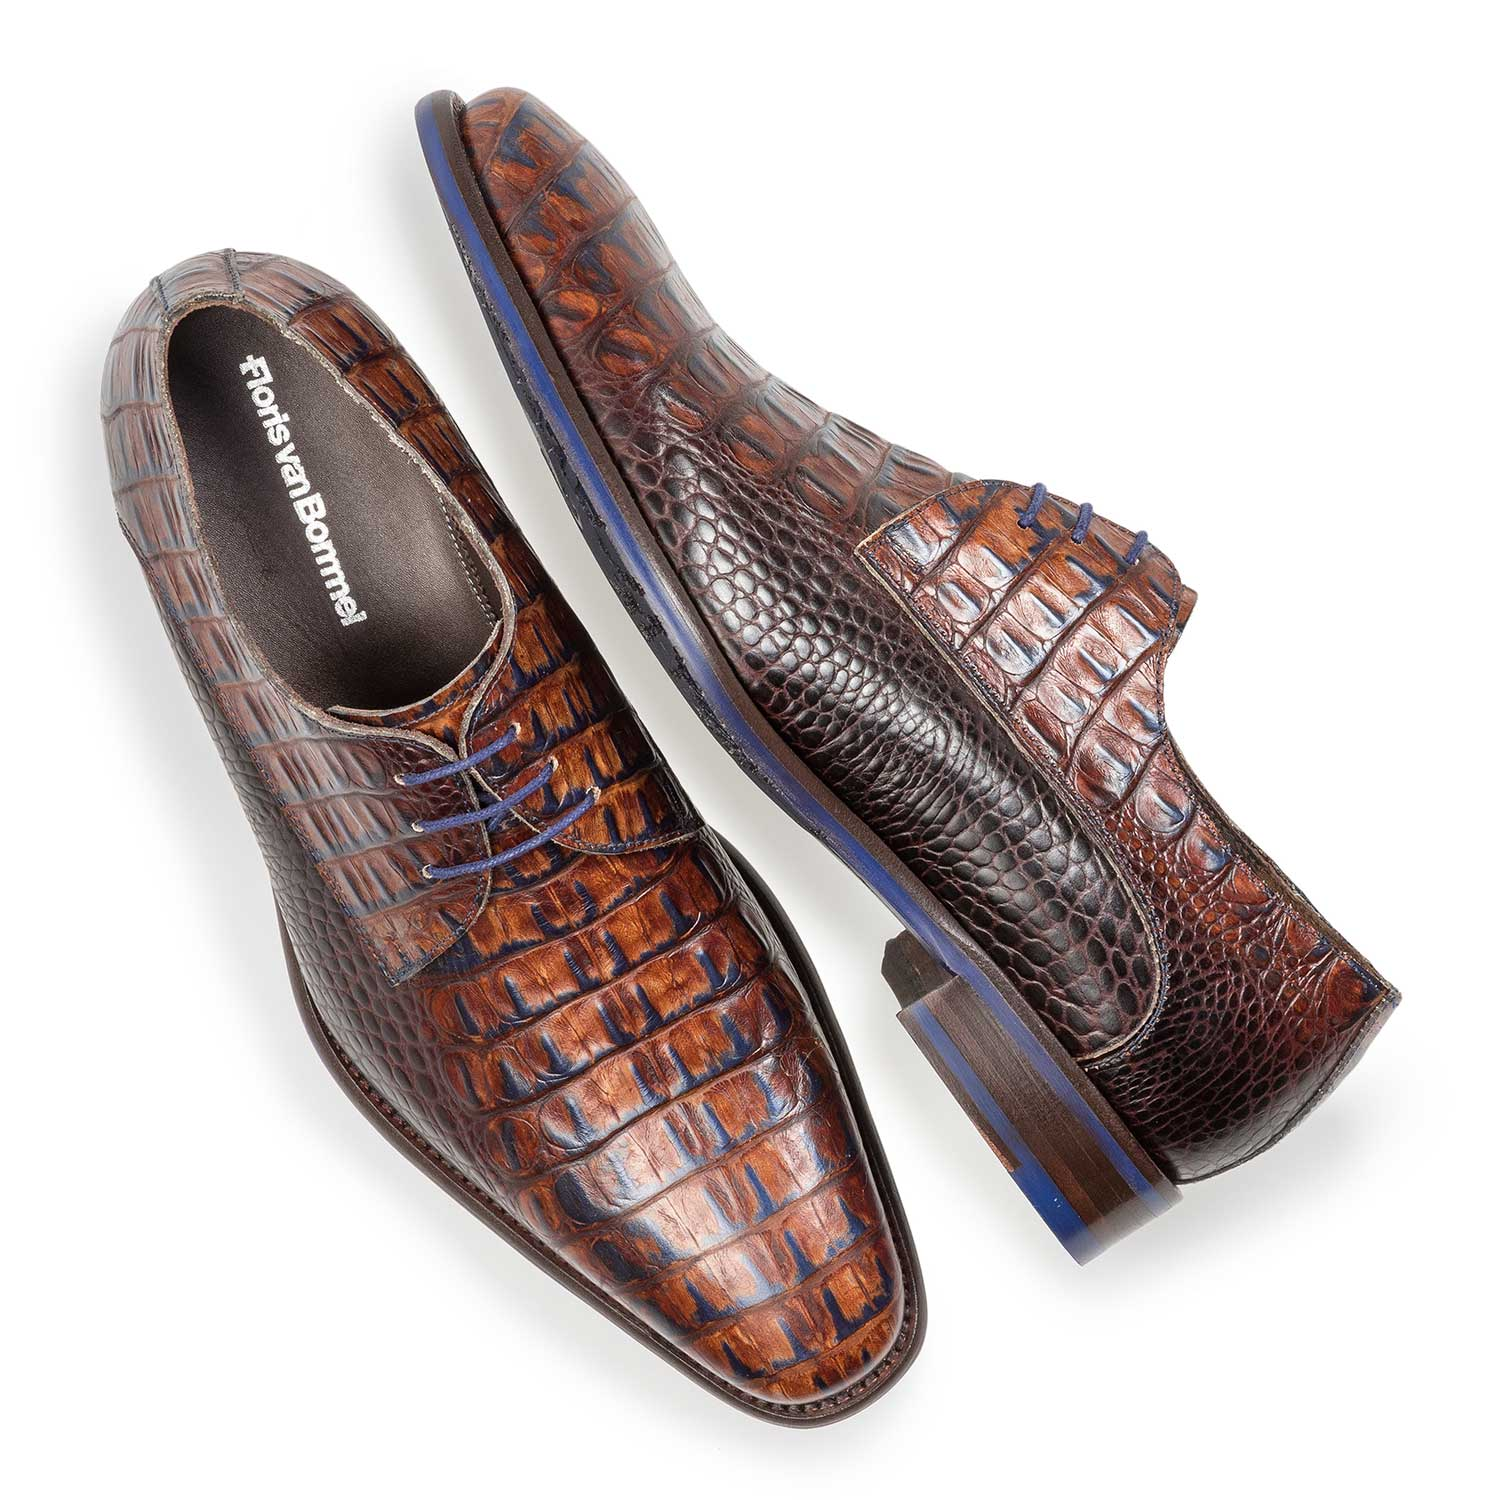 18159/04 - Cognac-coloured leather lace shoe with croco print